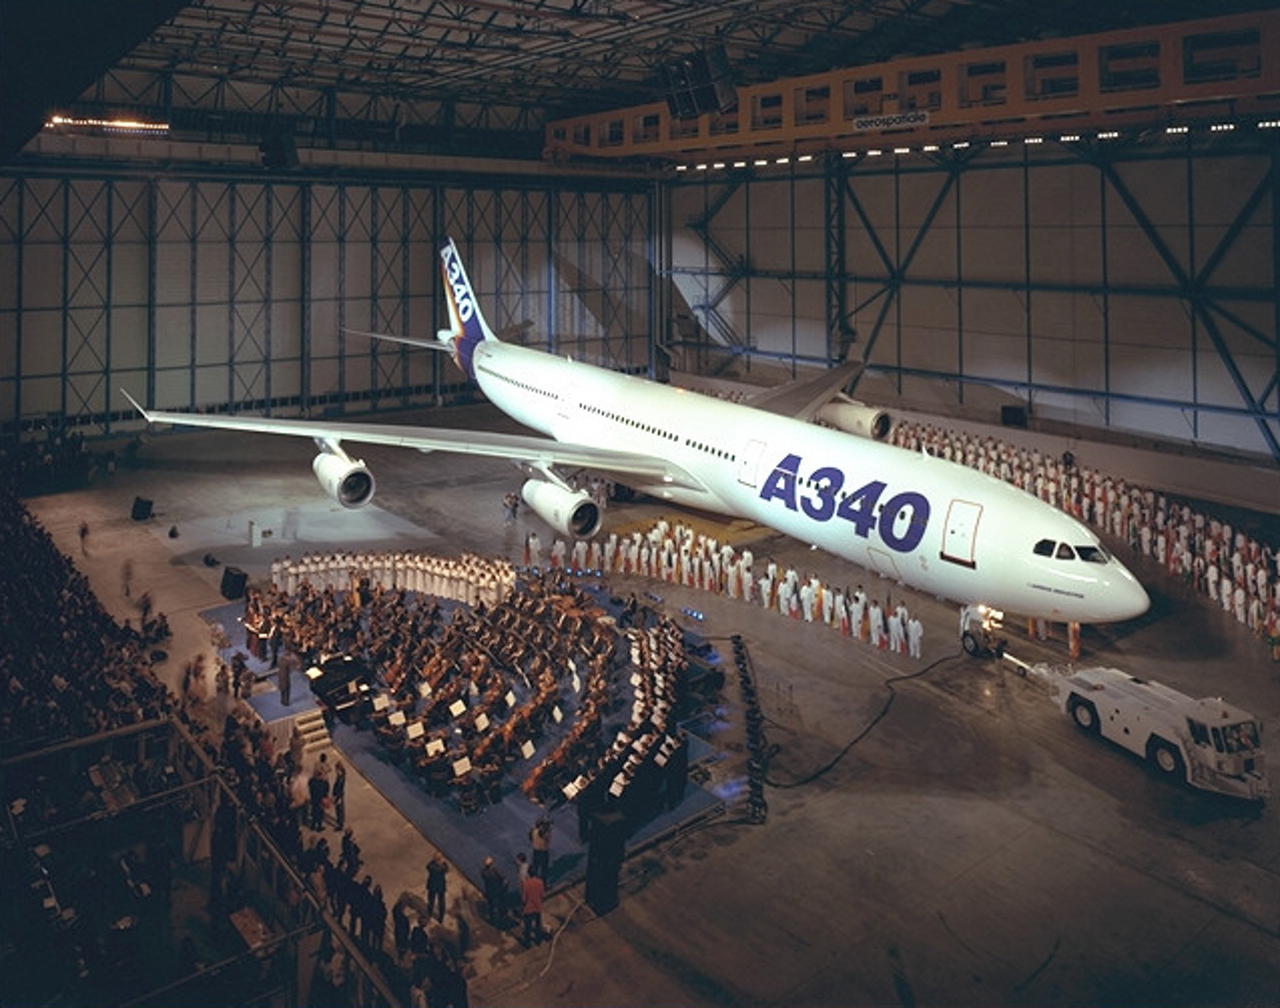 Airbus' A340 is introduced to the world during a media event.